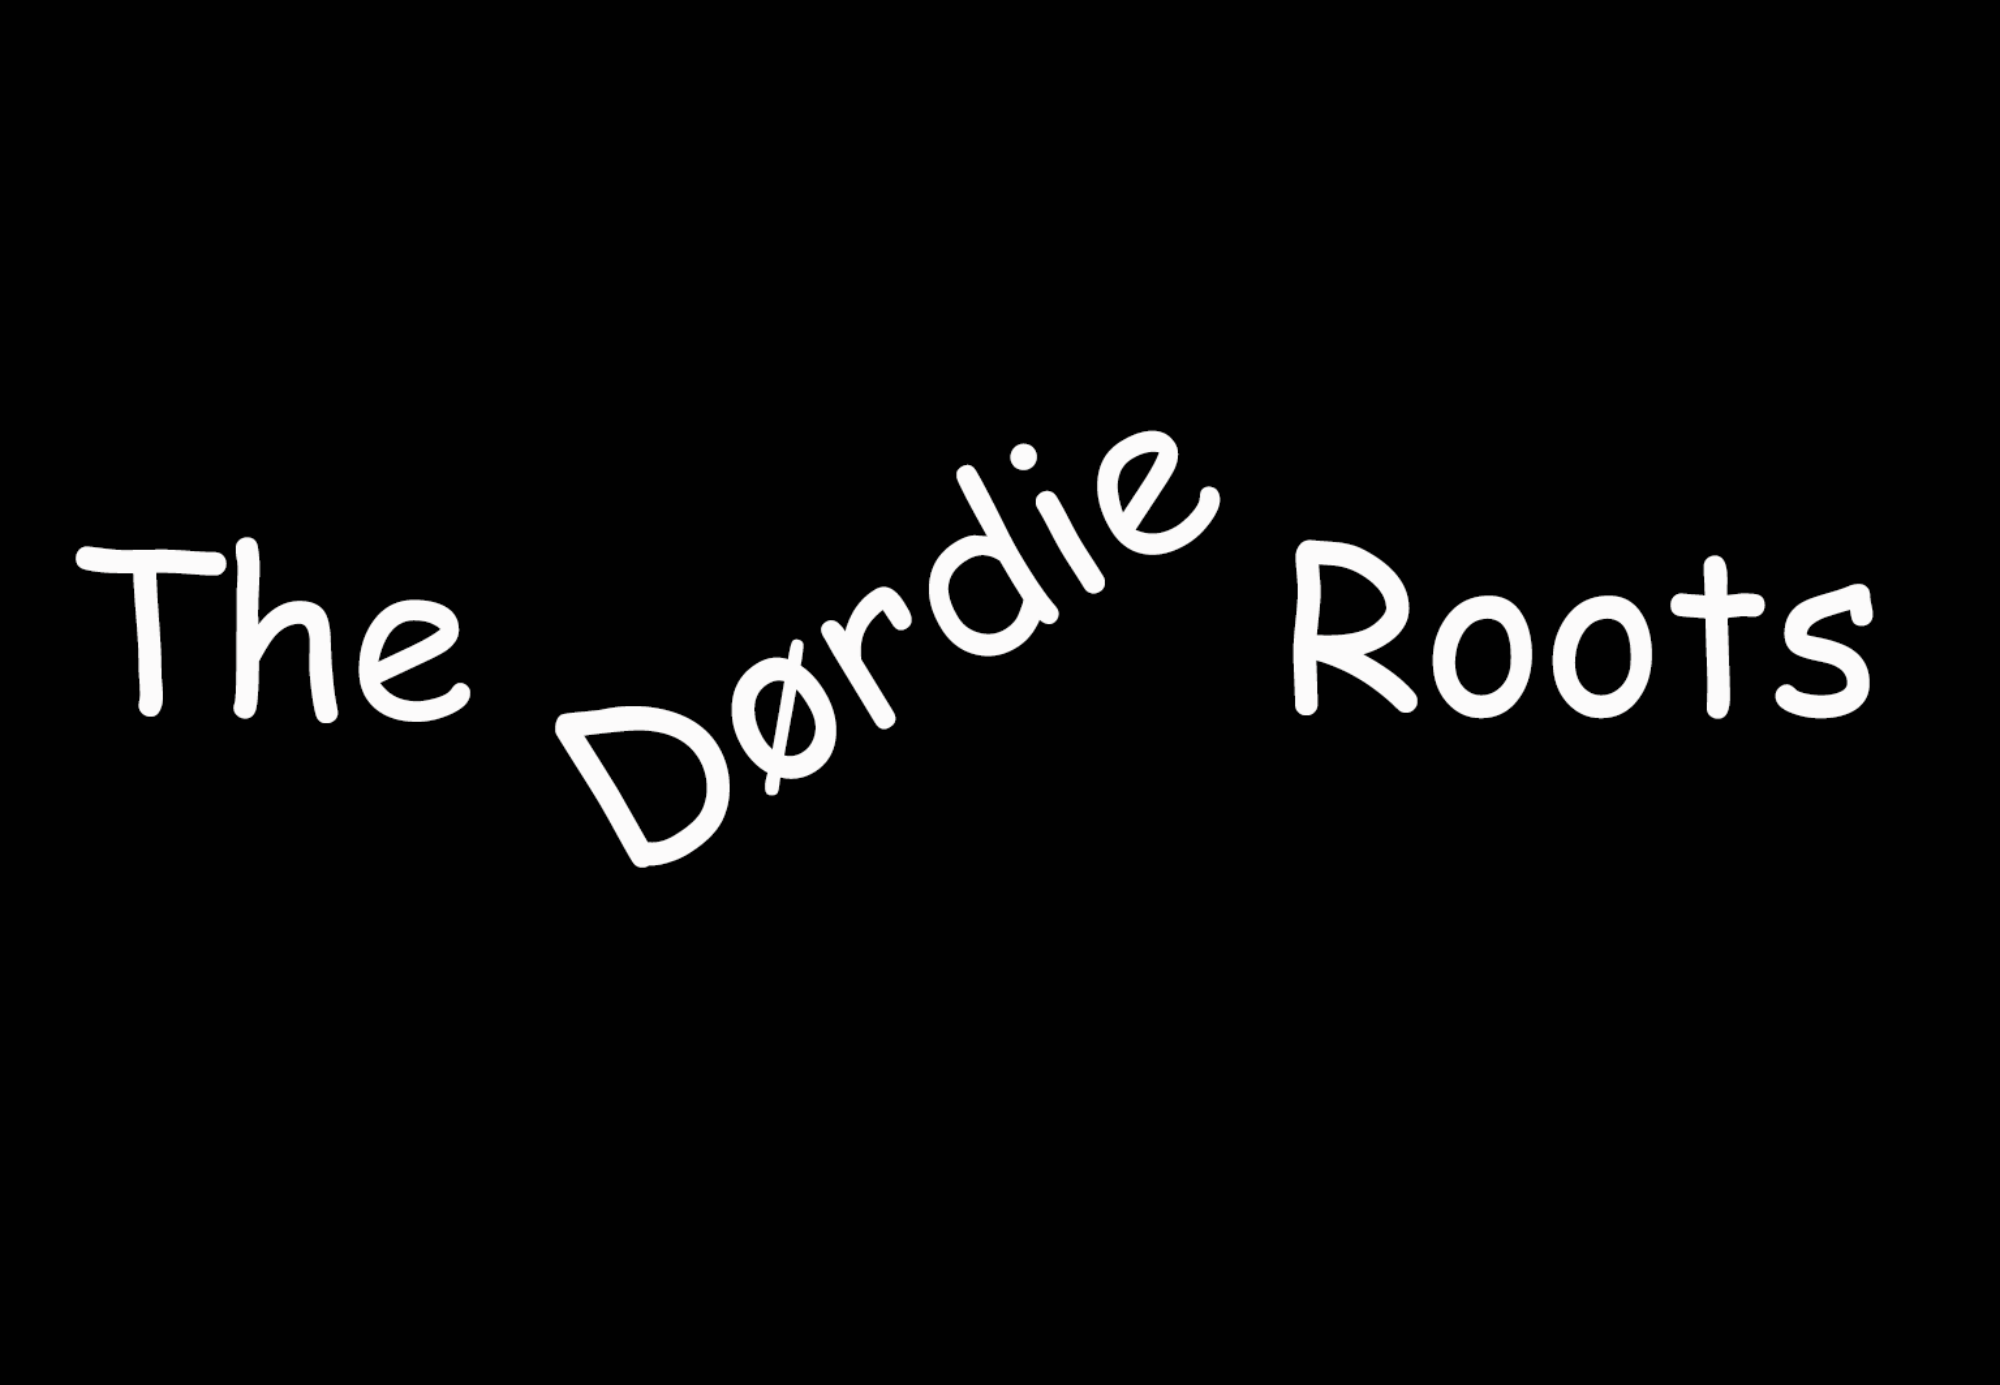 The Dørdie Roots